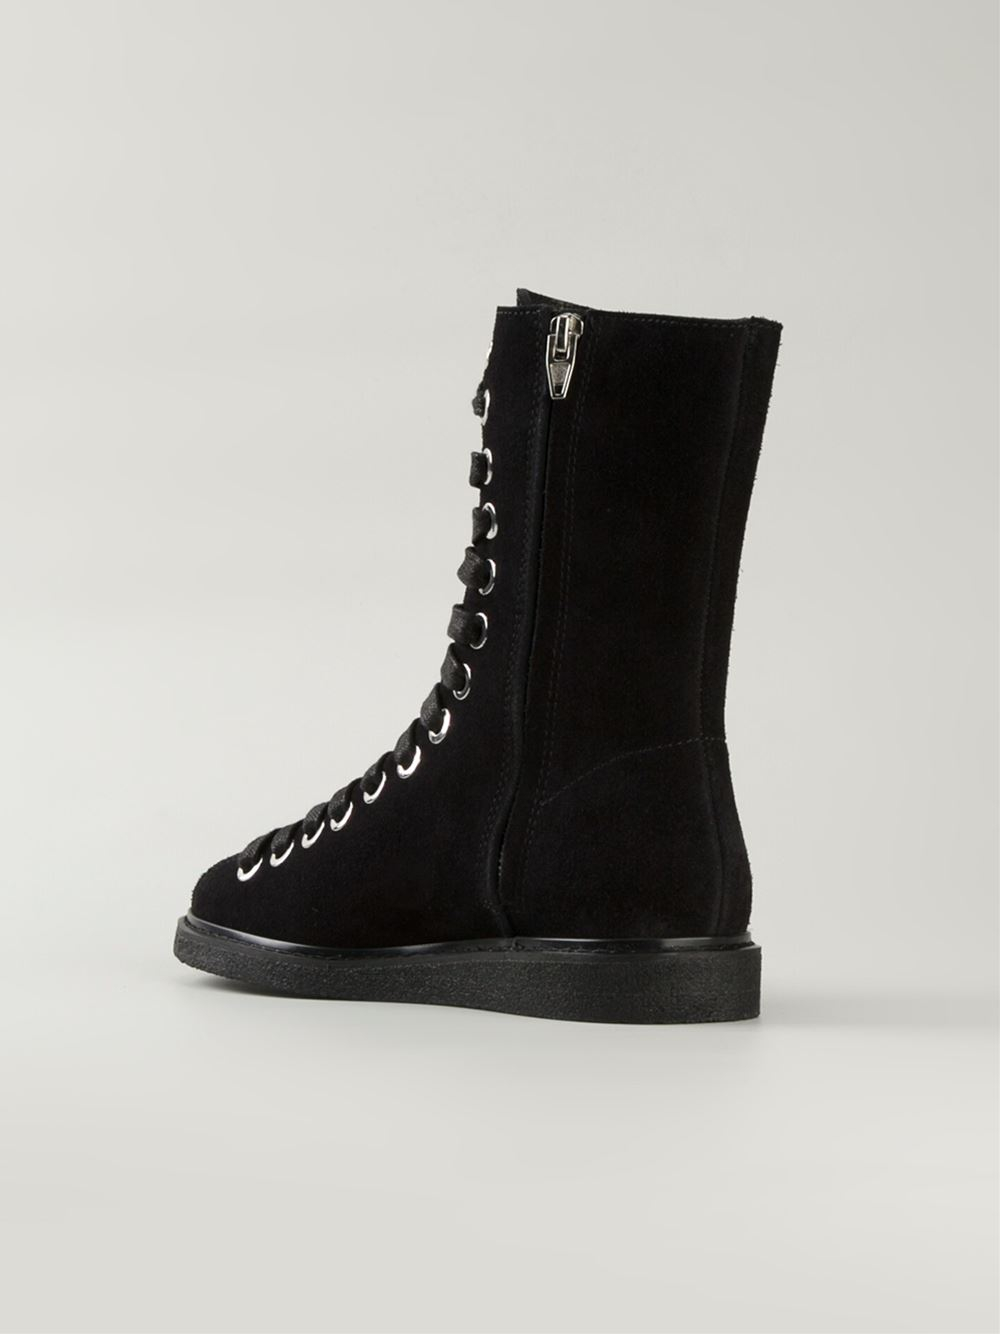 Alexander Wang - Shoes - Shopbop